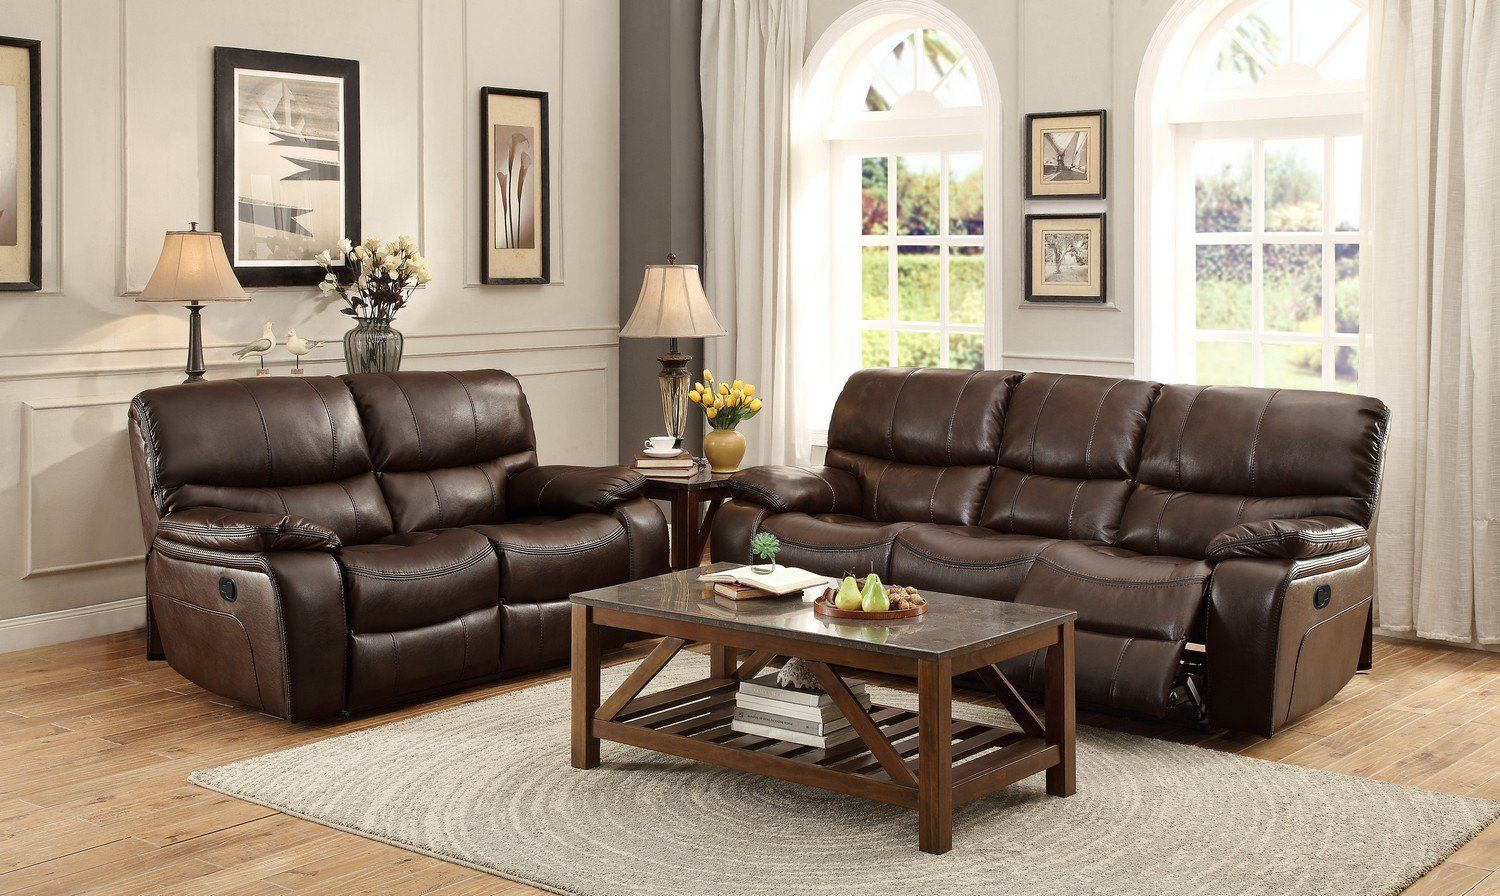 Pecos 2pc Dark Brown Leather Match Double Reclining Sofa Loveseat